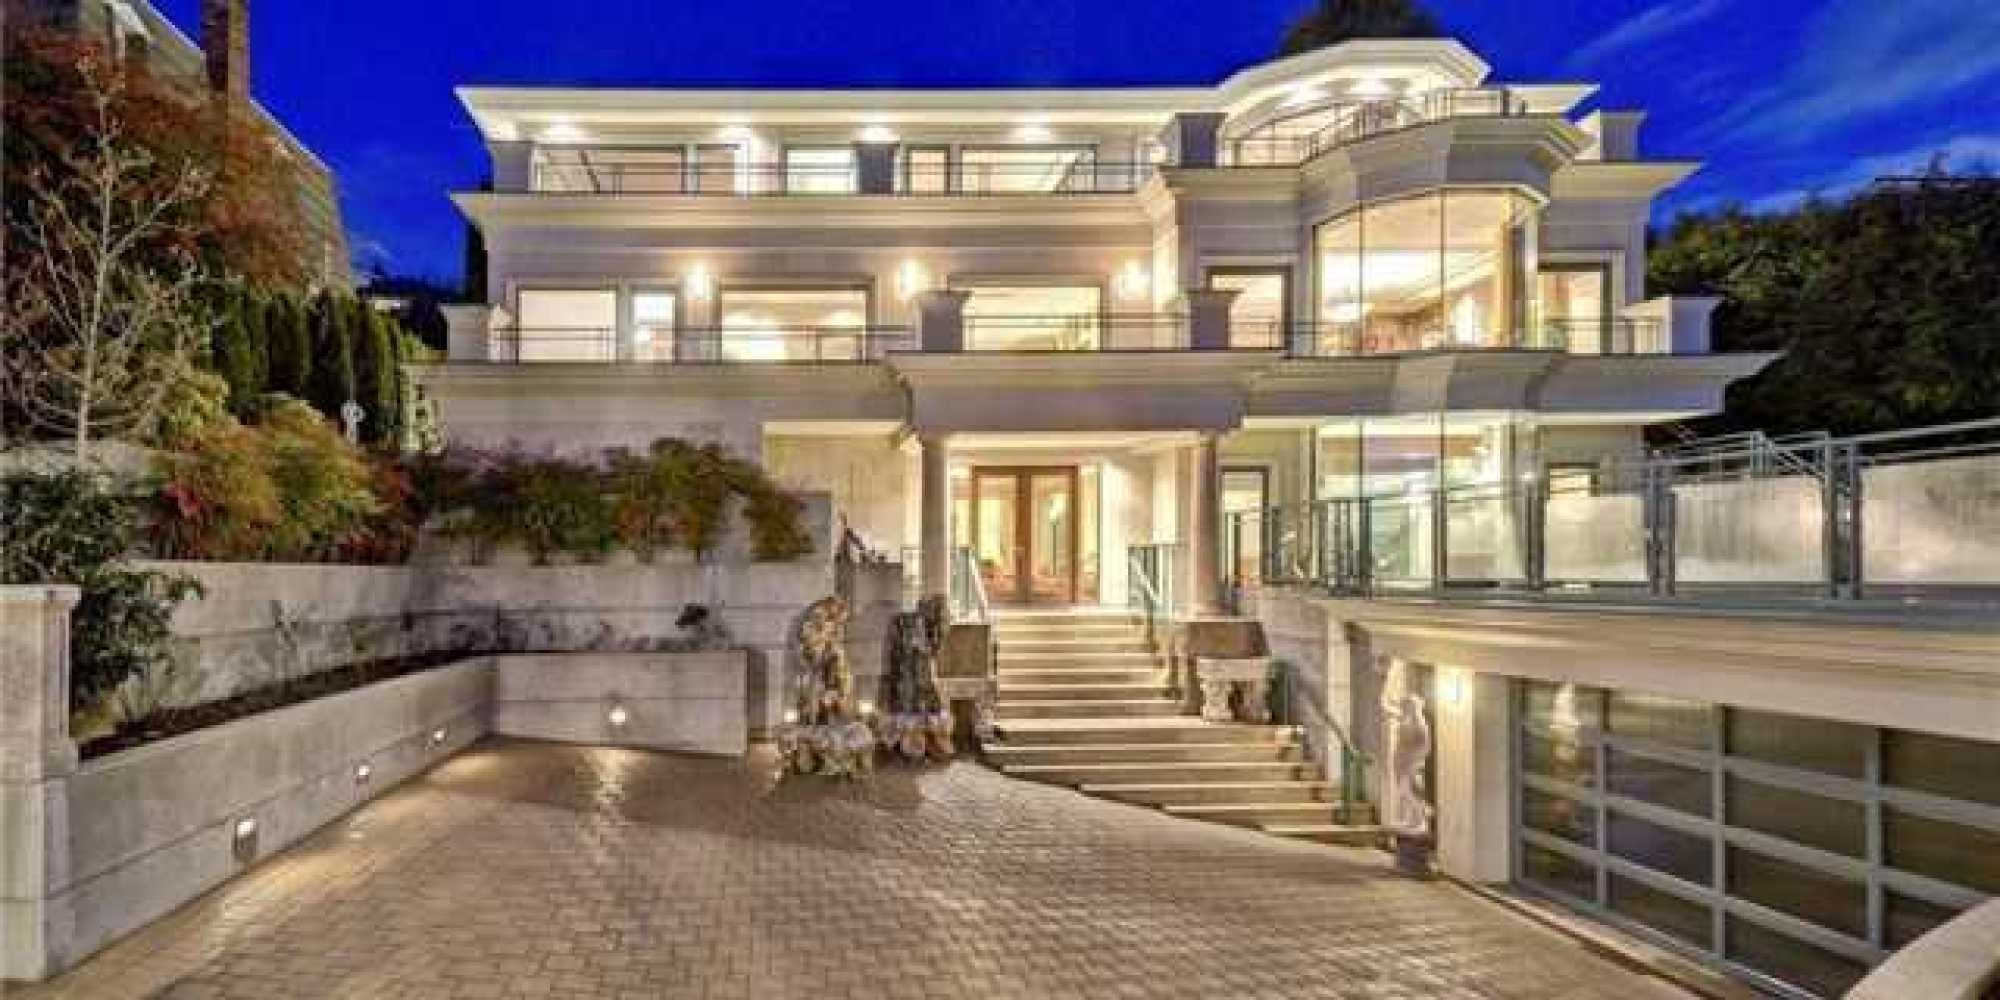 Most Expensive Fancy Houses In The World House Design Fancy